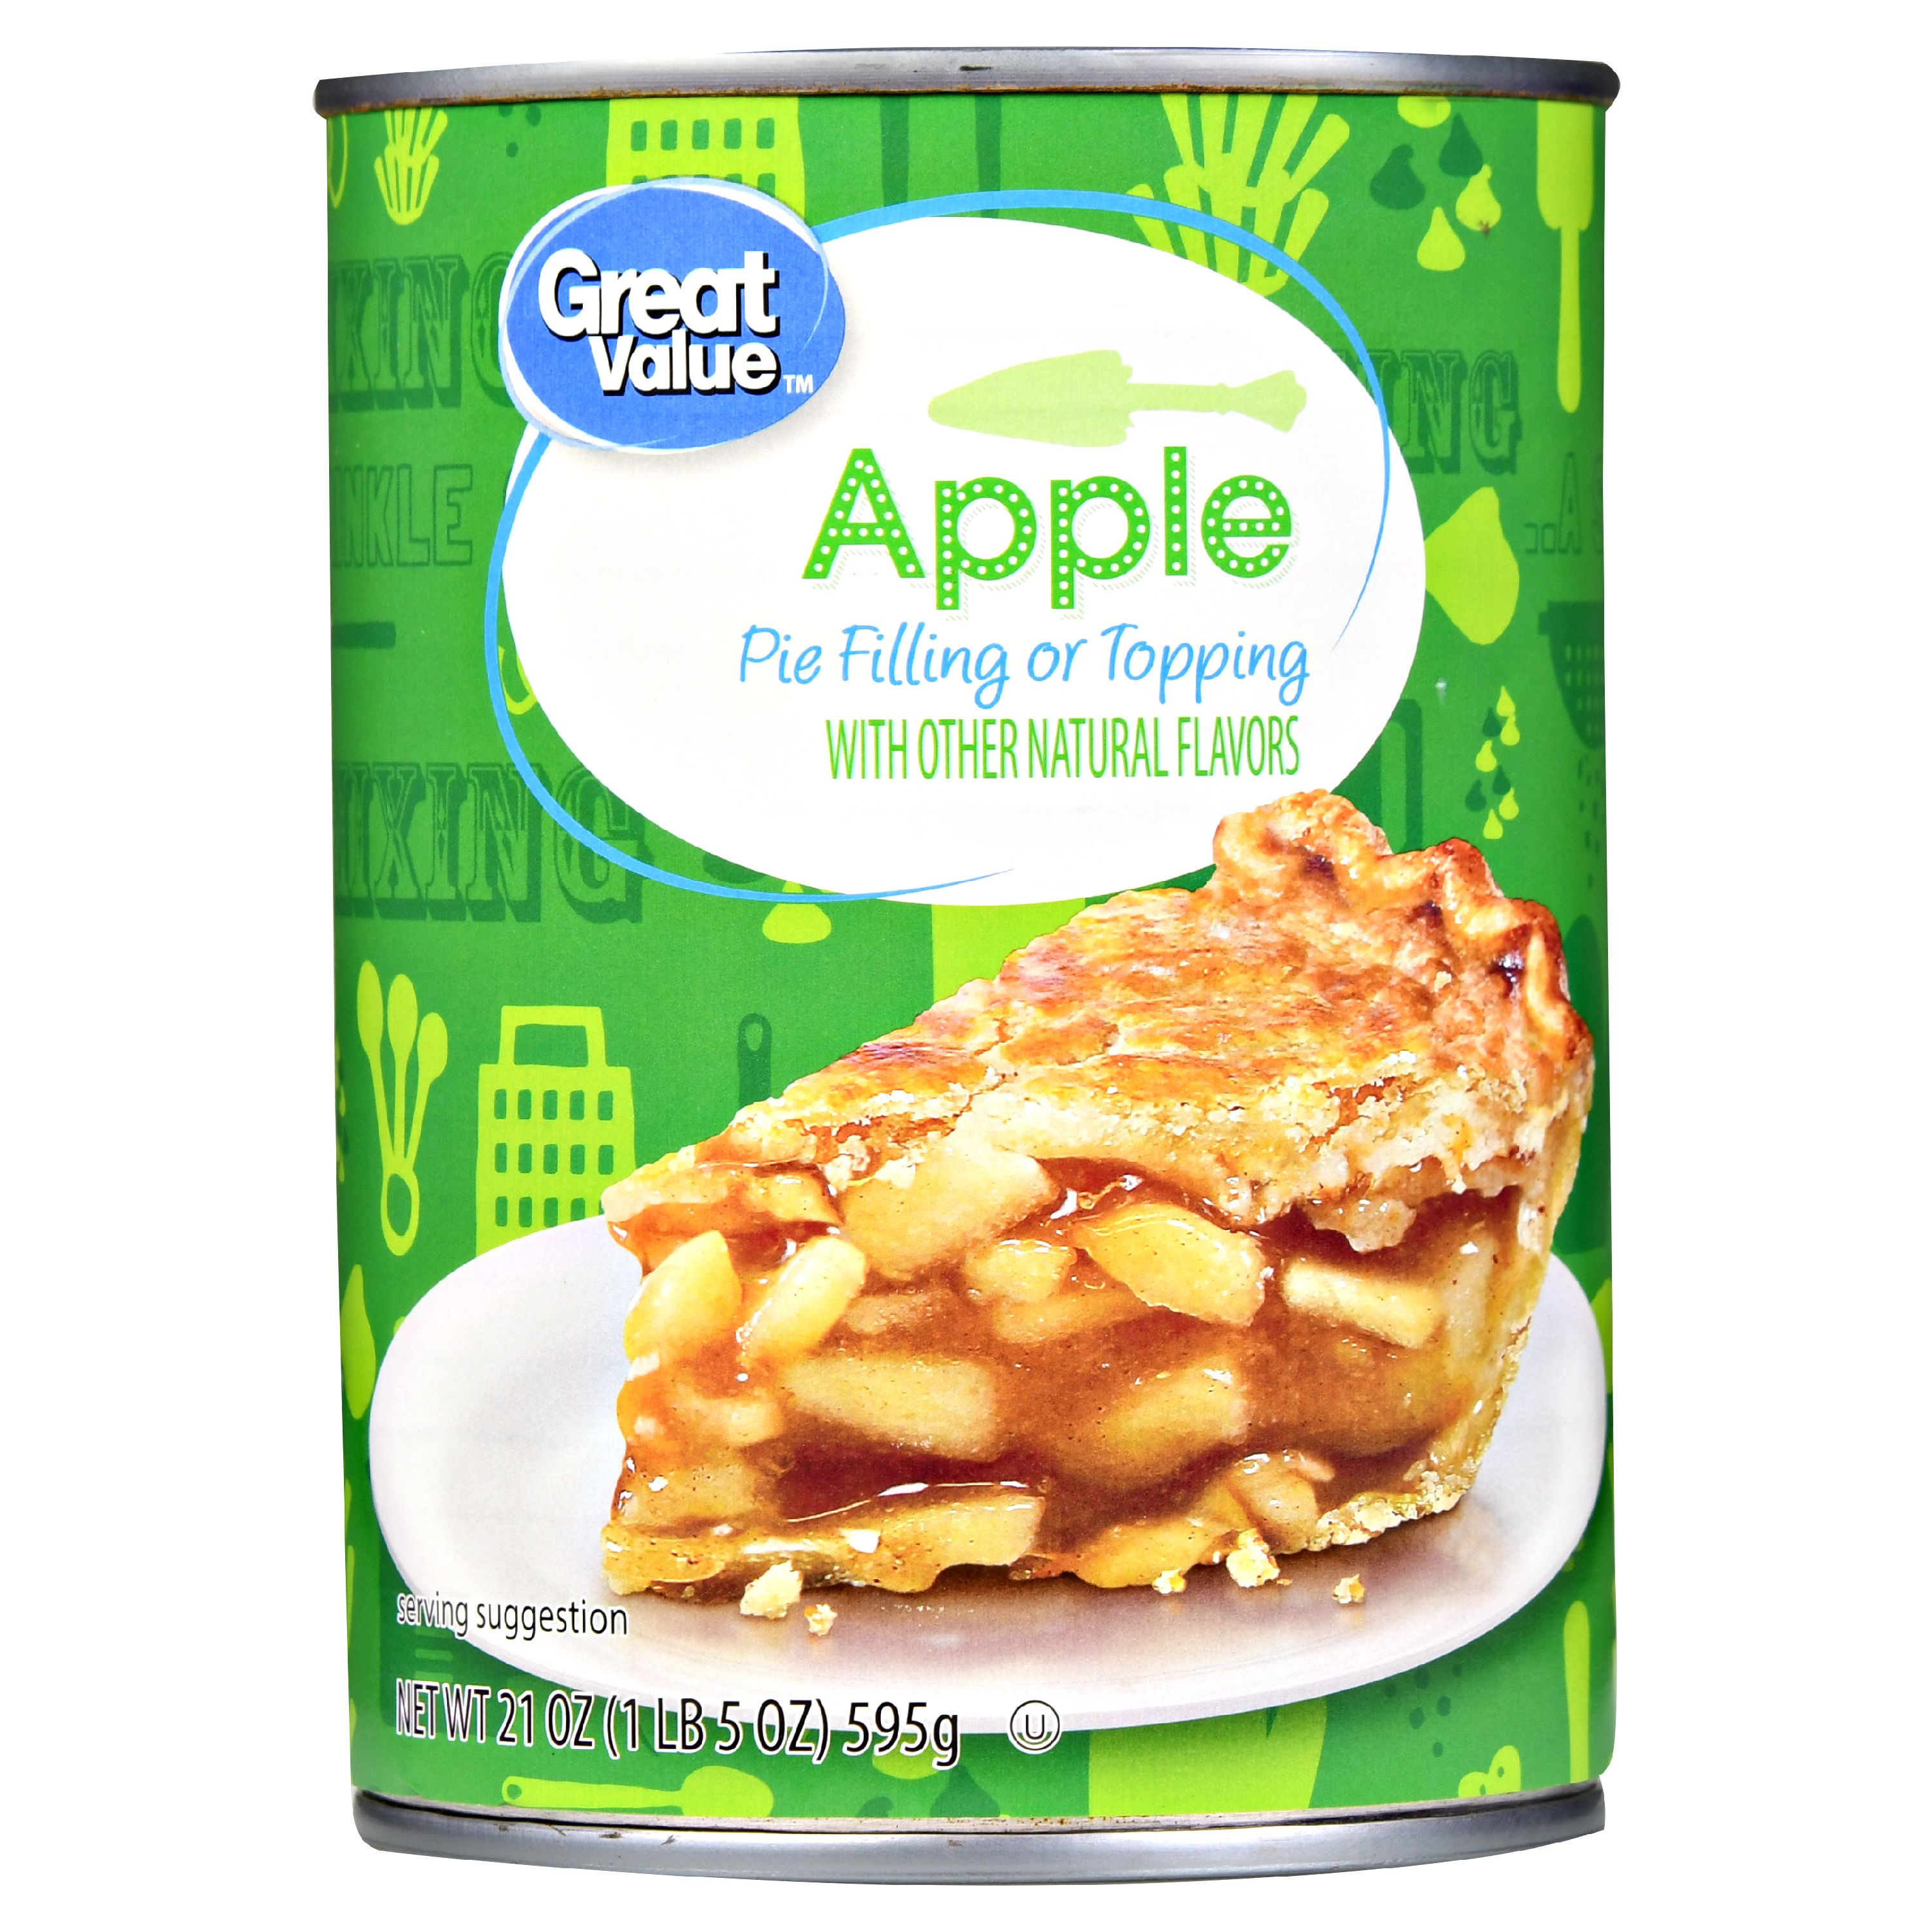 (4 Pack) Great Value Pie Filling or Topping, Apple, 21 oz